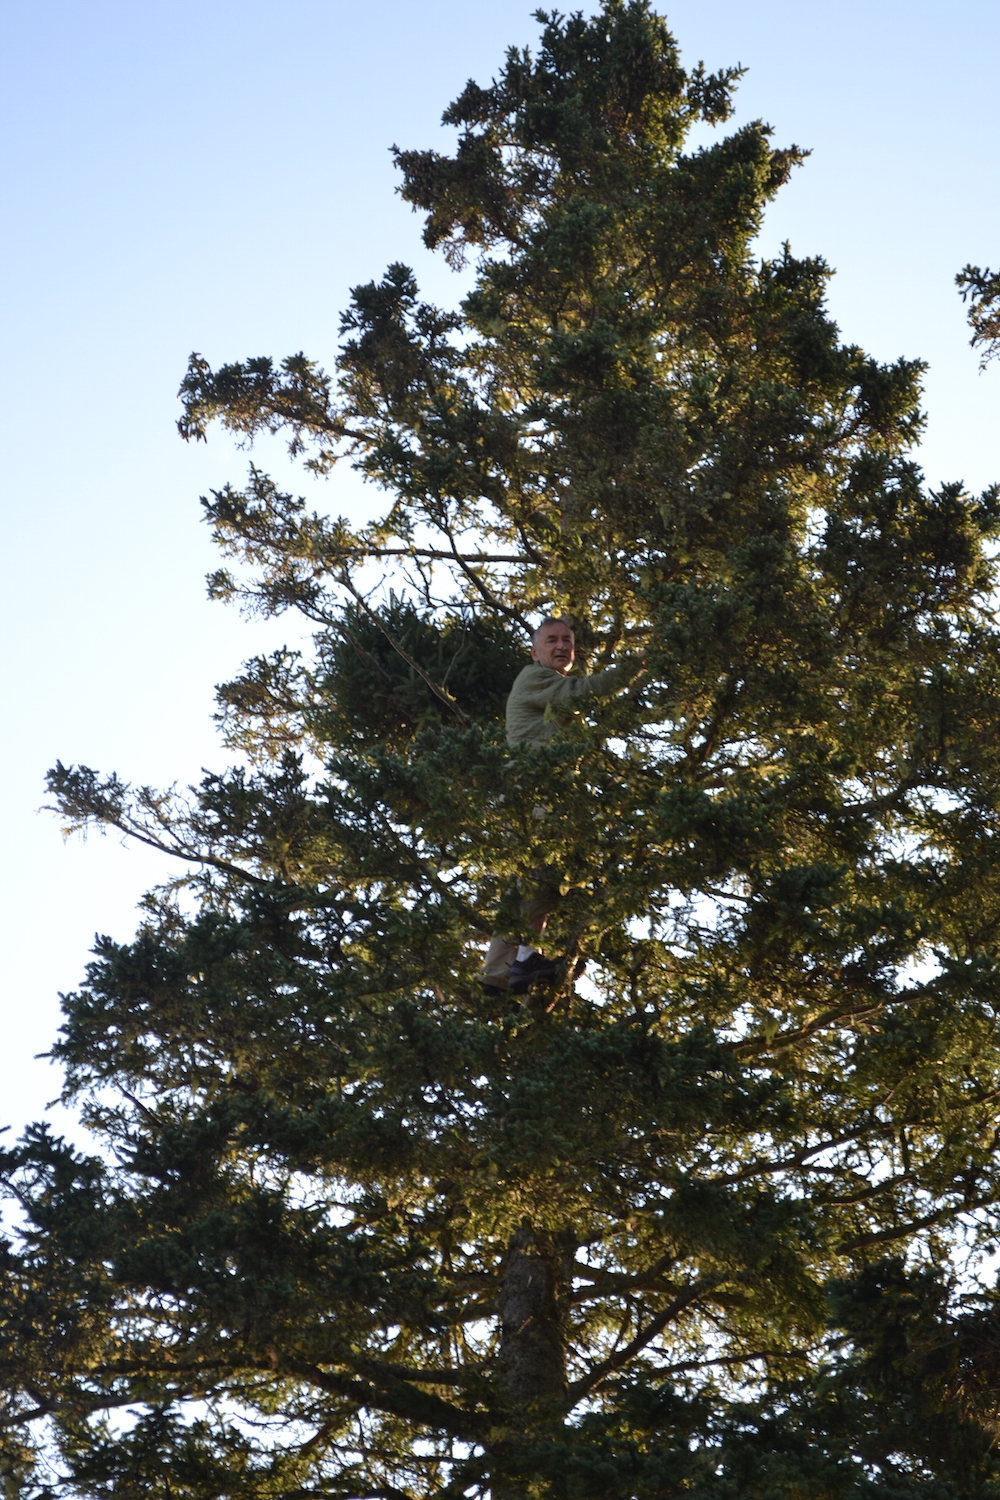 Climbing the spruce trees